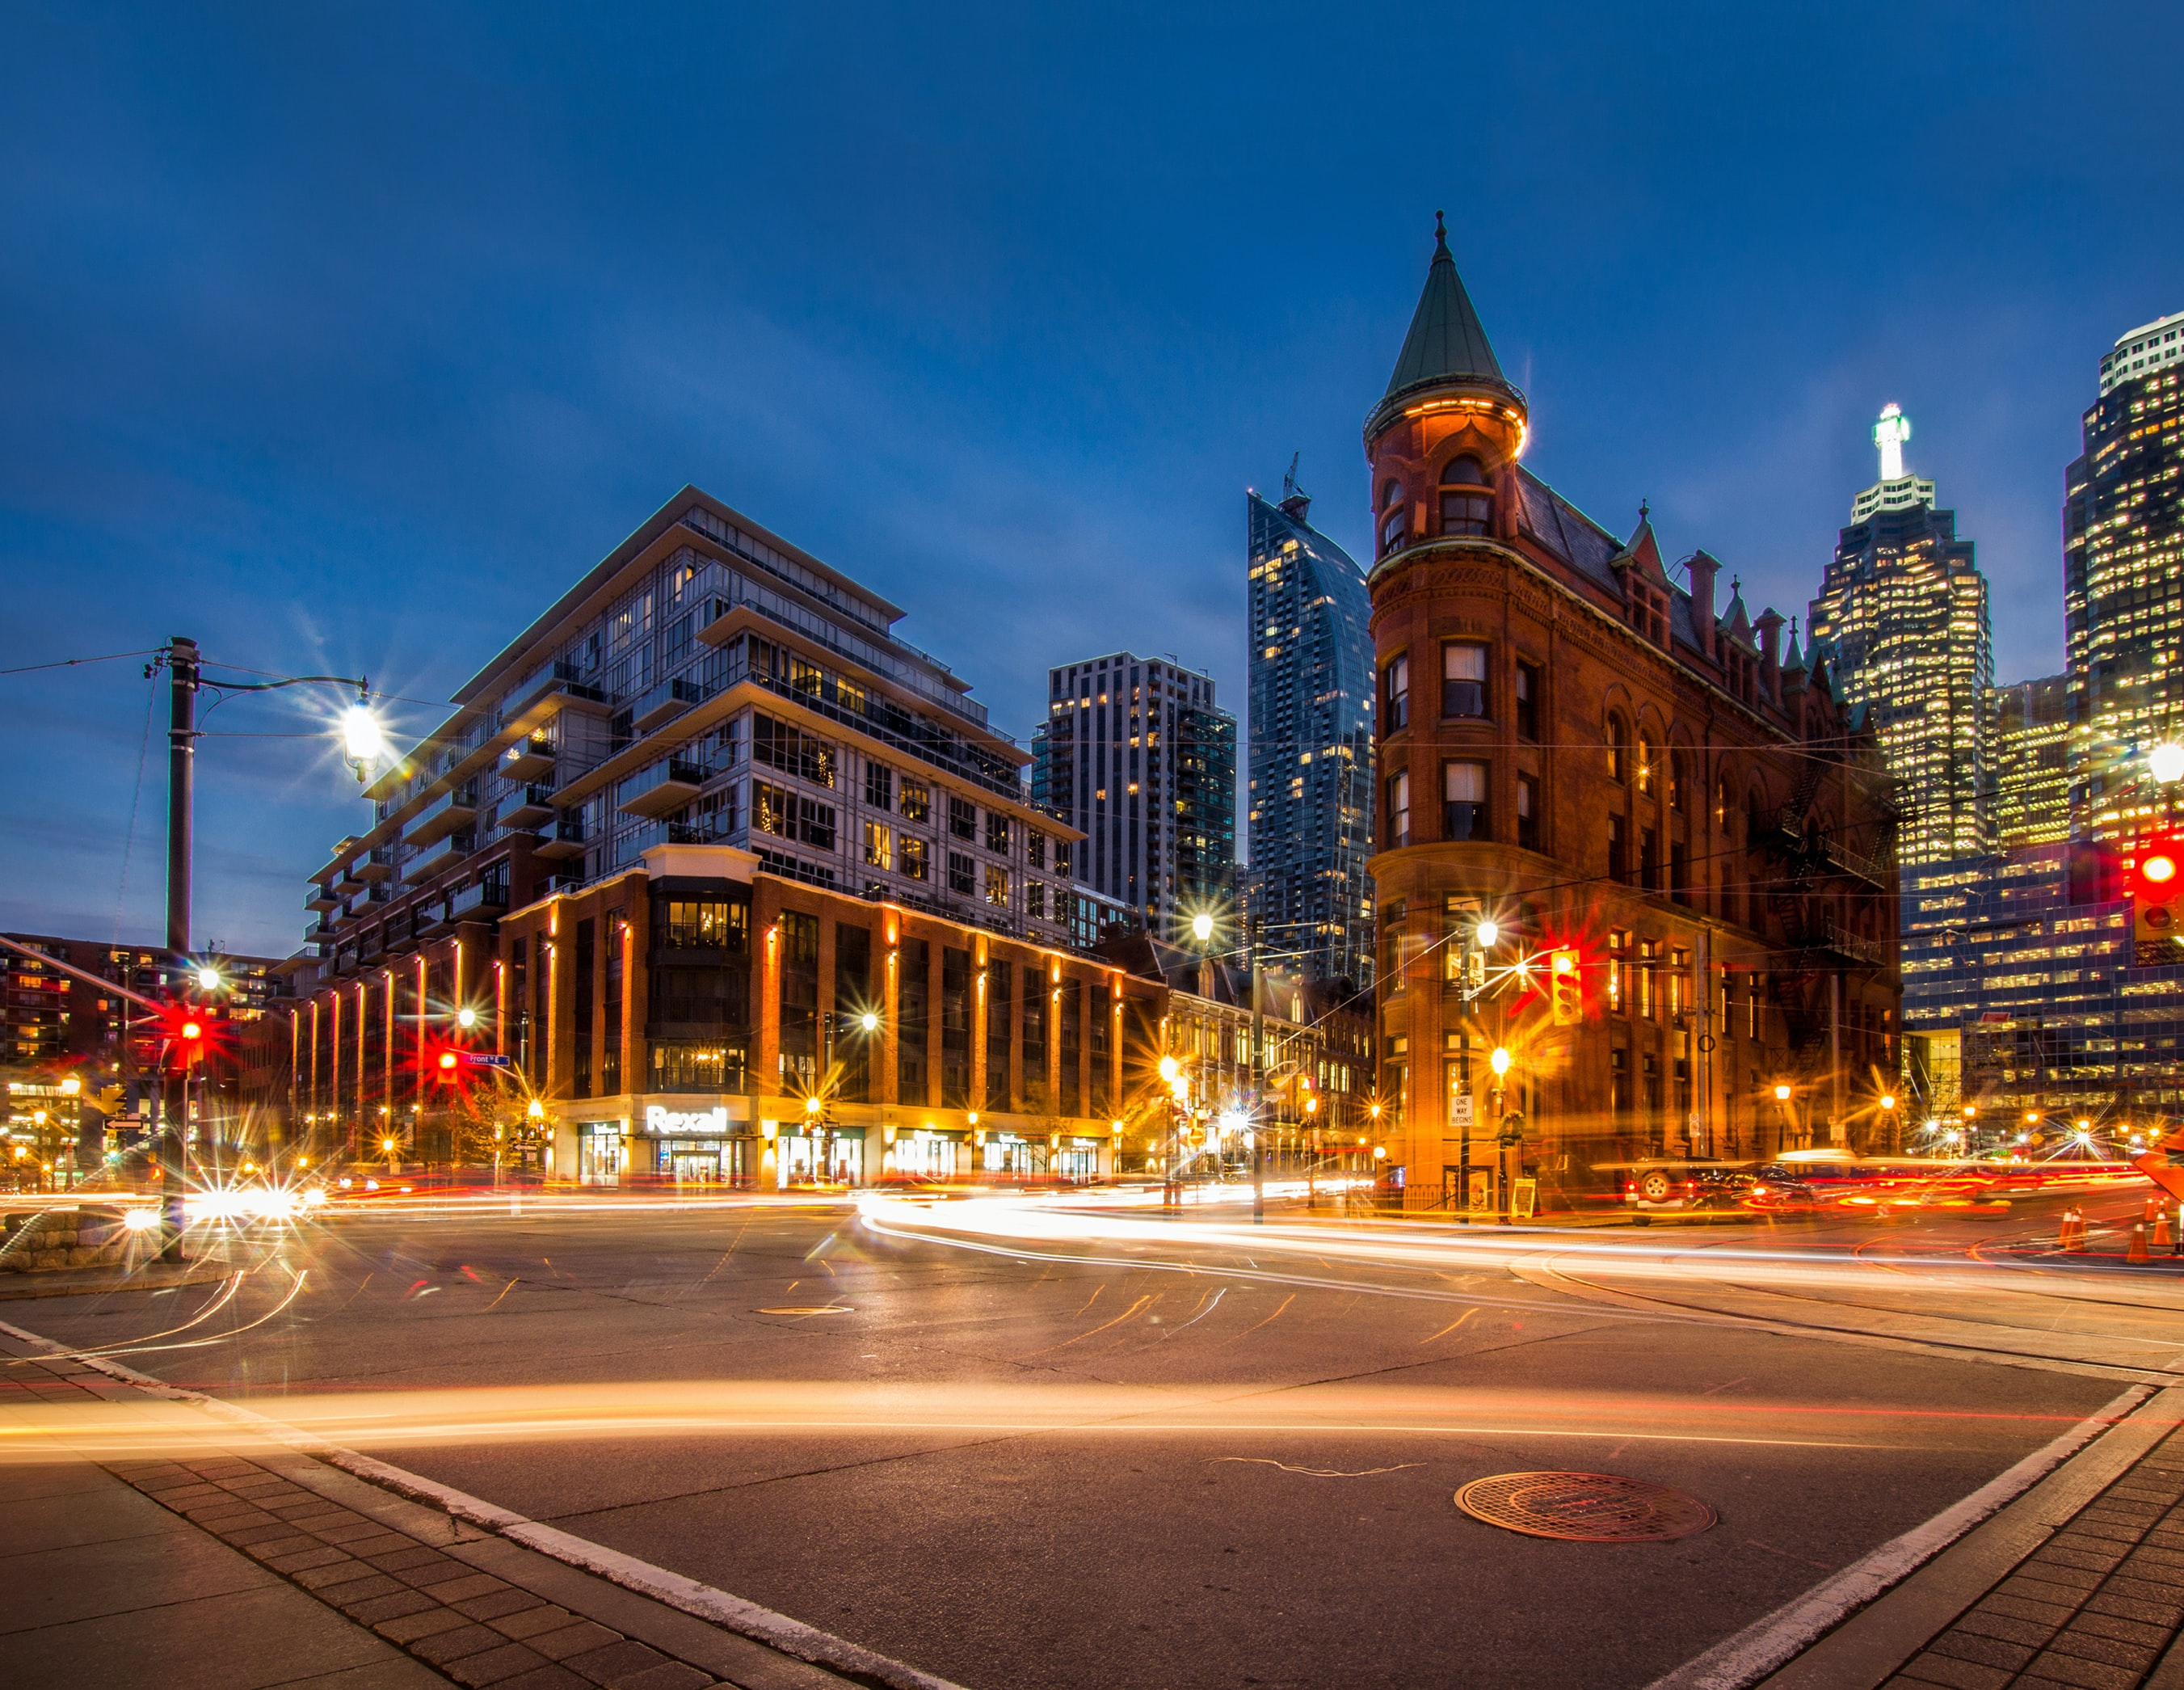 A beautiful background highlighting city lights, with an intersection light trail timelapse